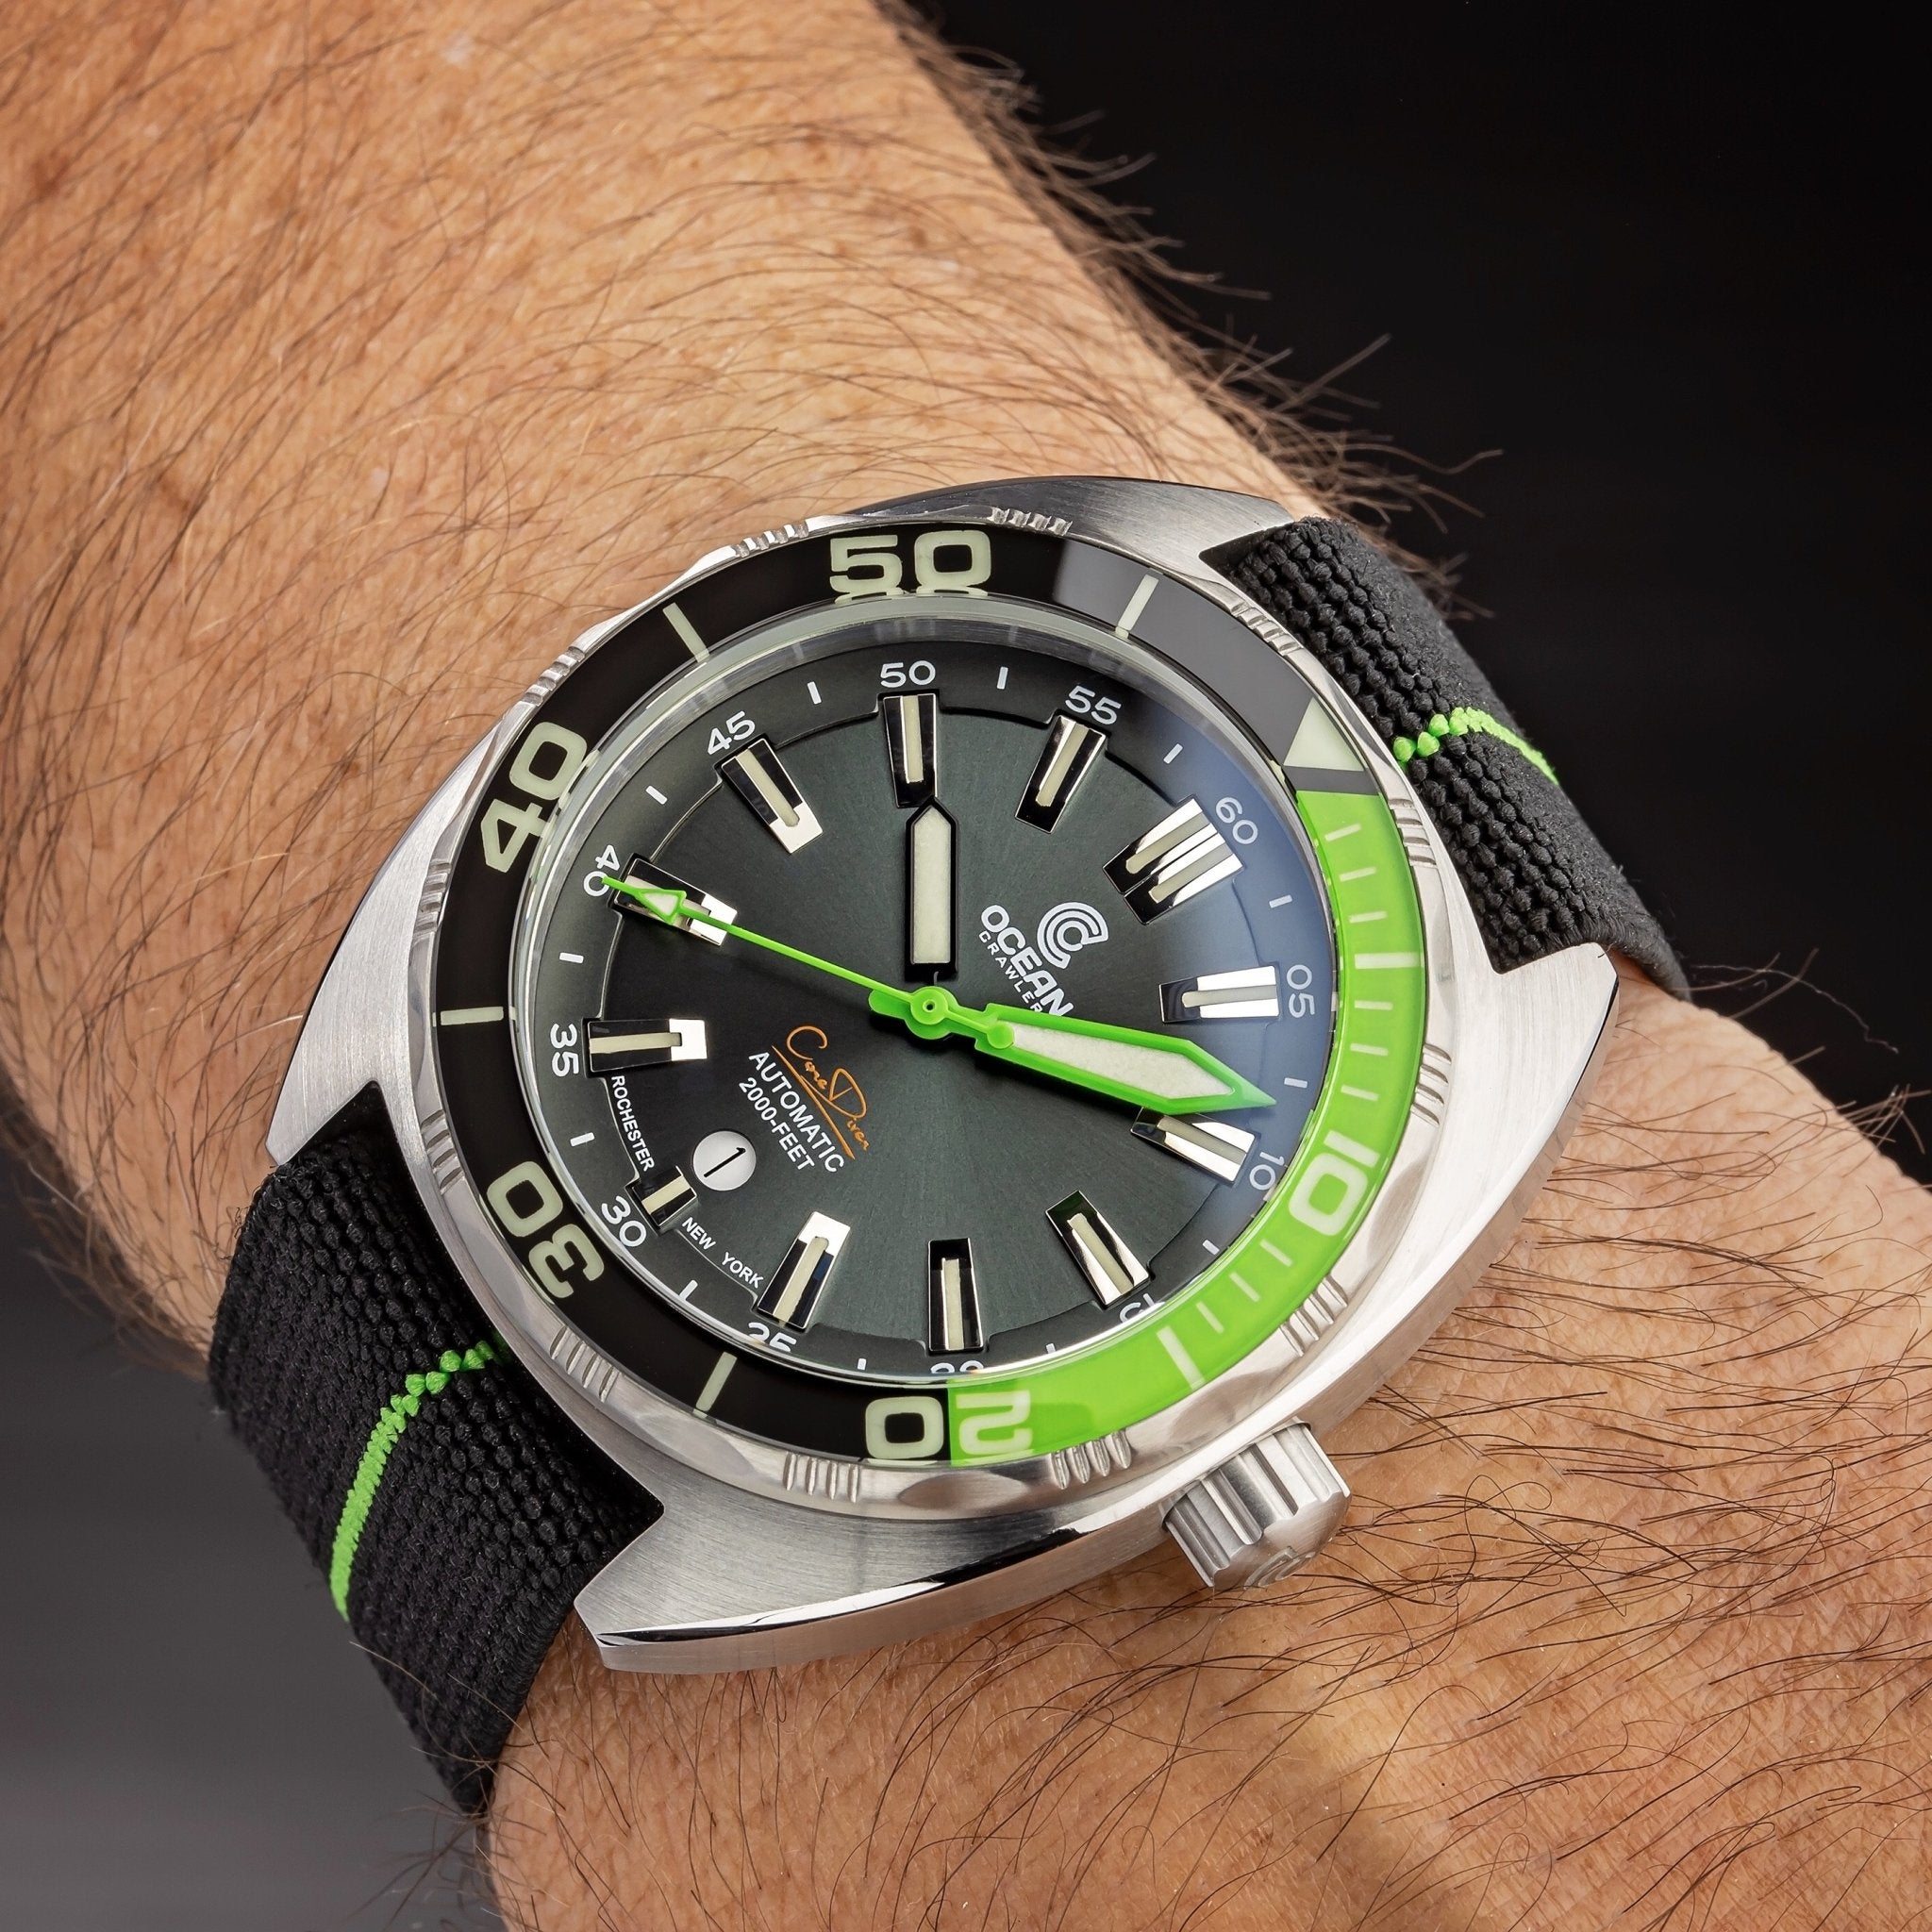 Lime Green/Black NATO Strap - Ocean Crawler Watch Co.